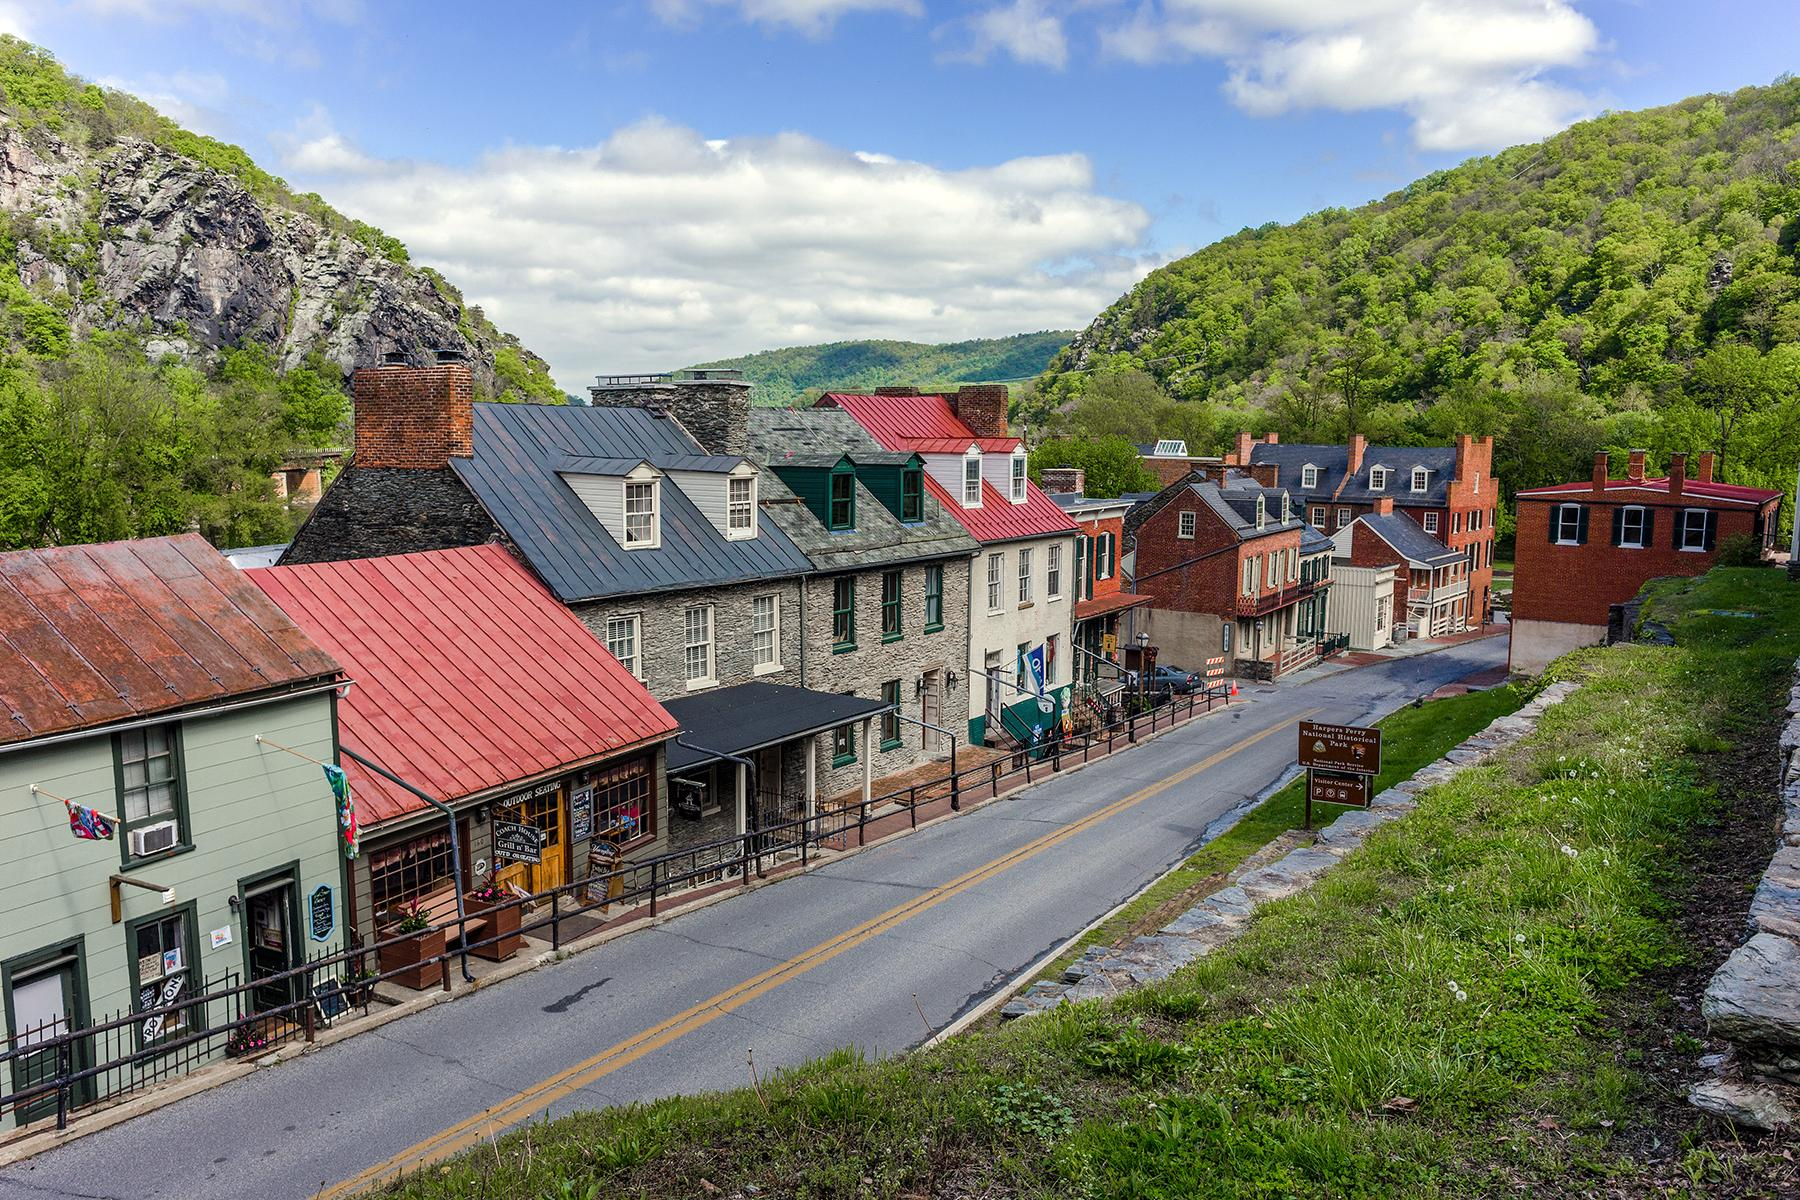 07_WestVirginia__JohnBrown'sHarpersFerry_7.) 33983199210_03aa7af67c_o